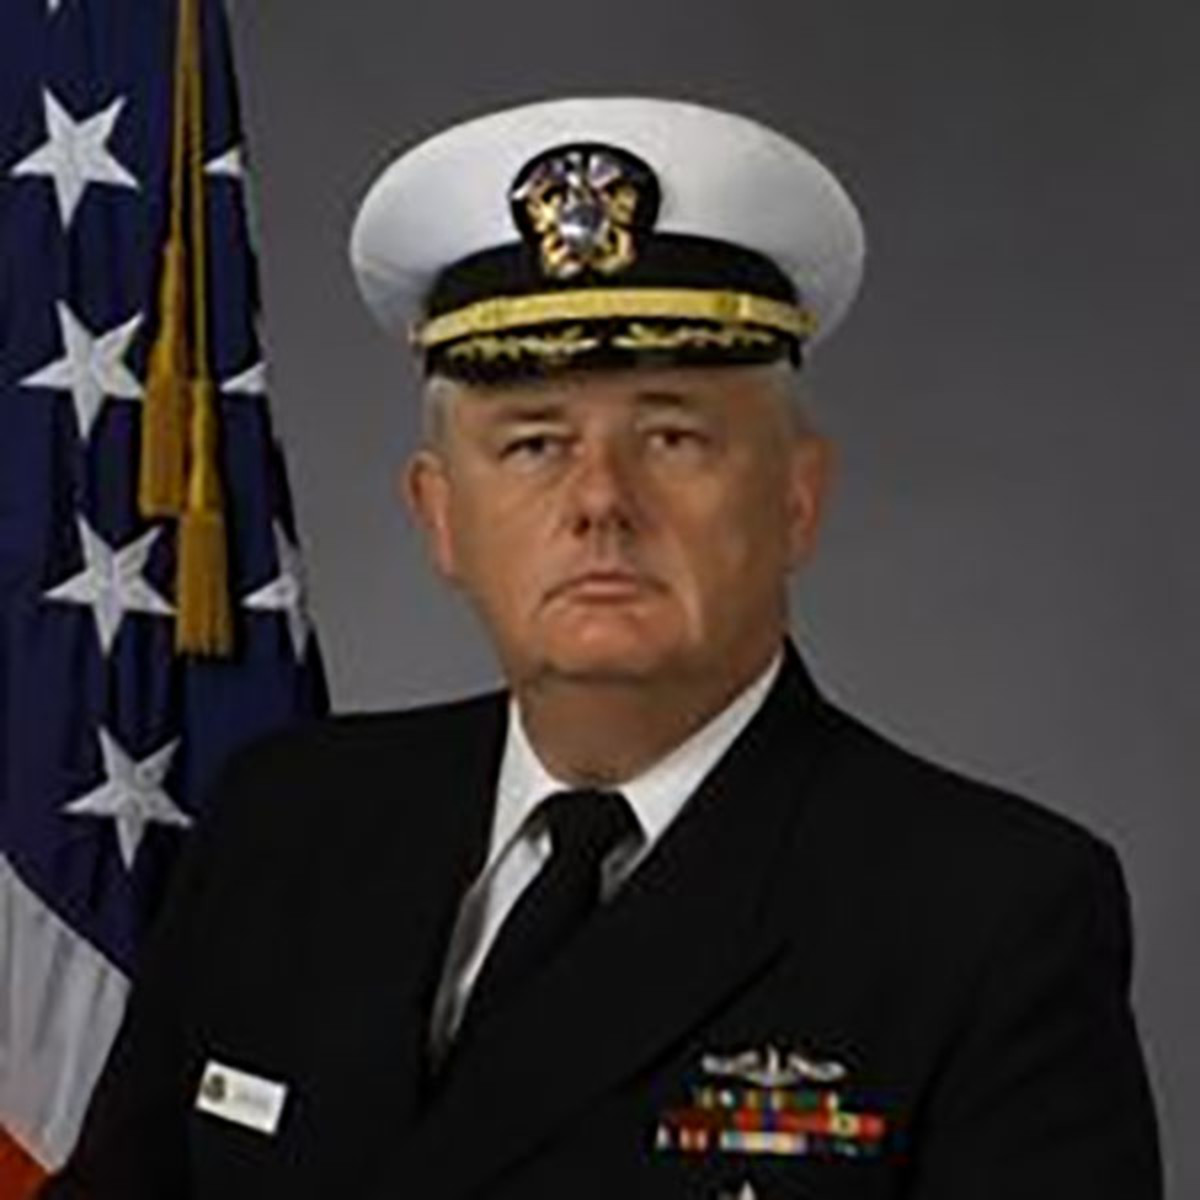 Commander Terry Sparks